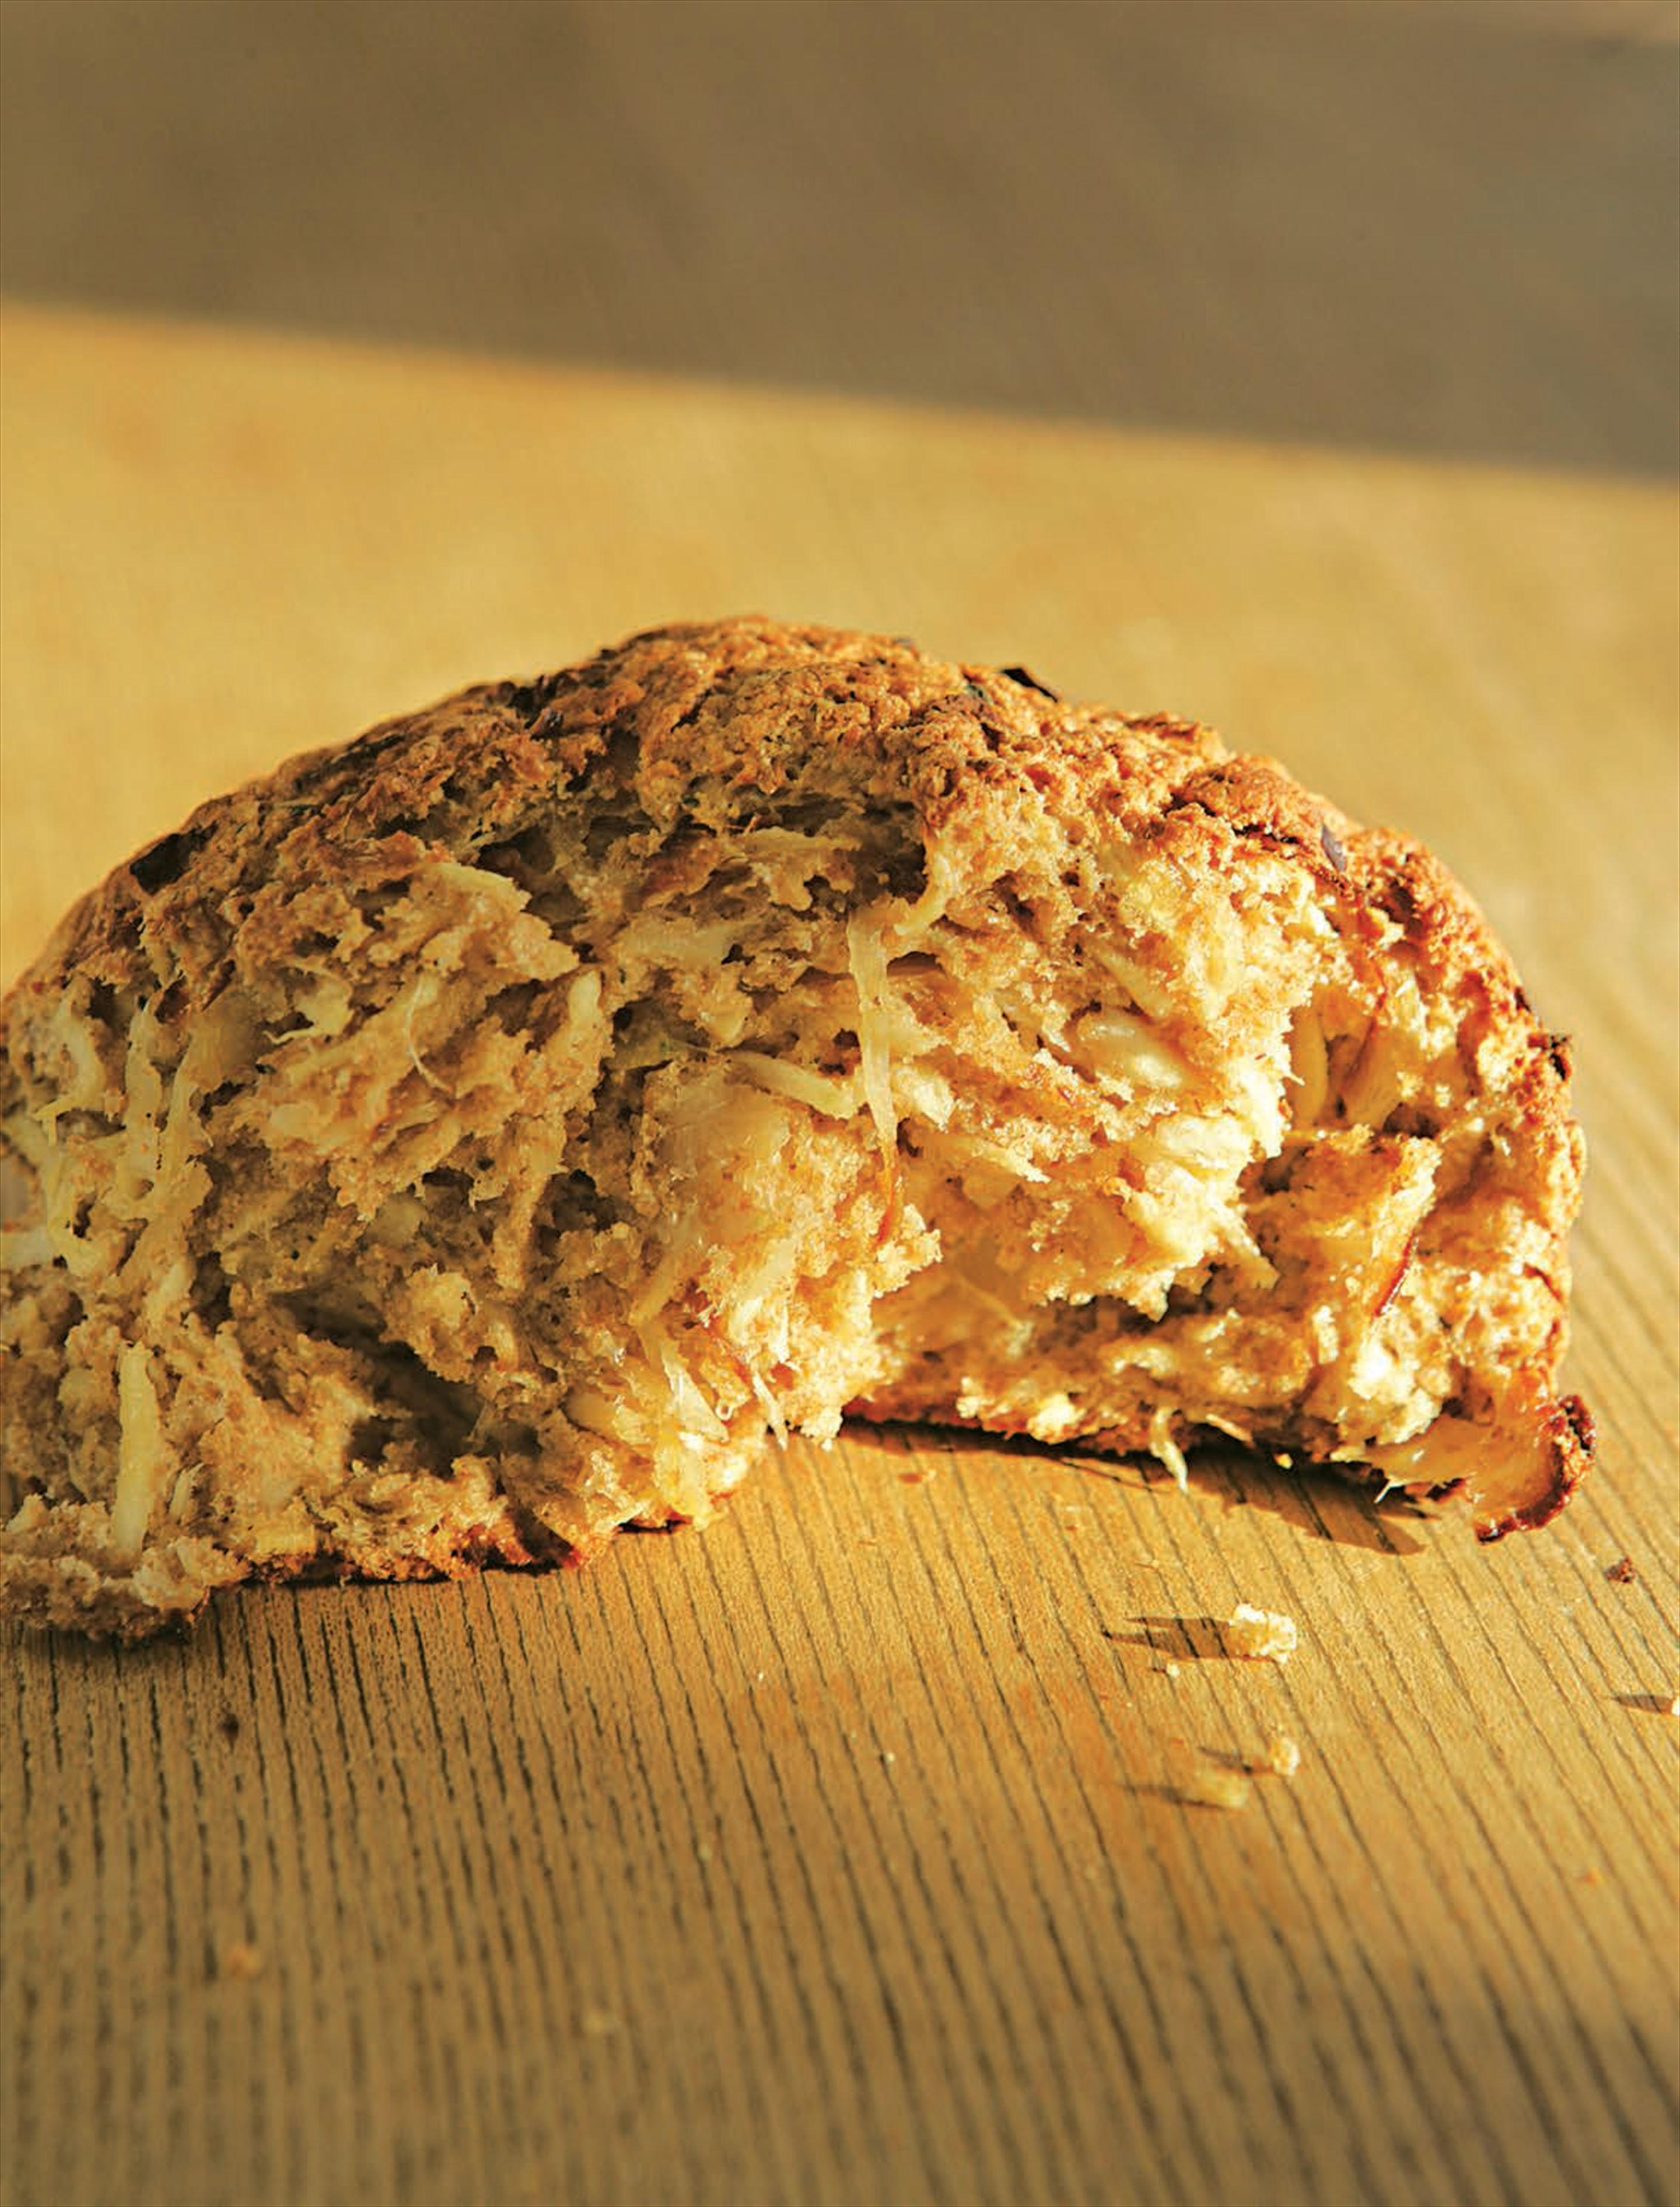 Parsnip and thyme bread